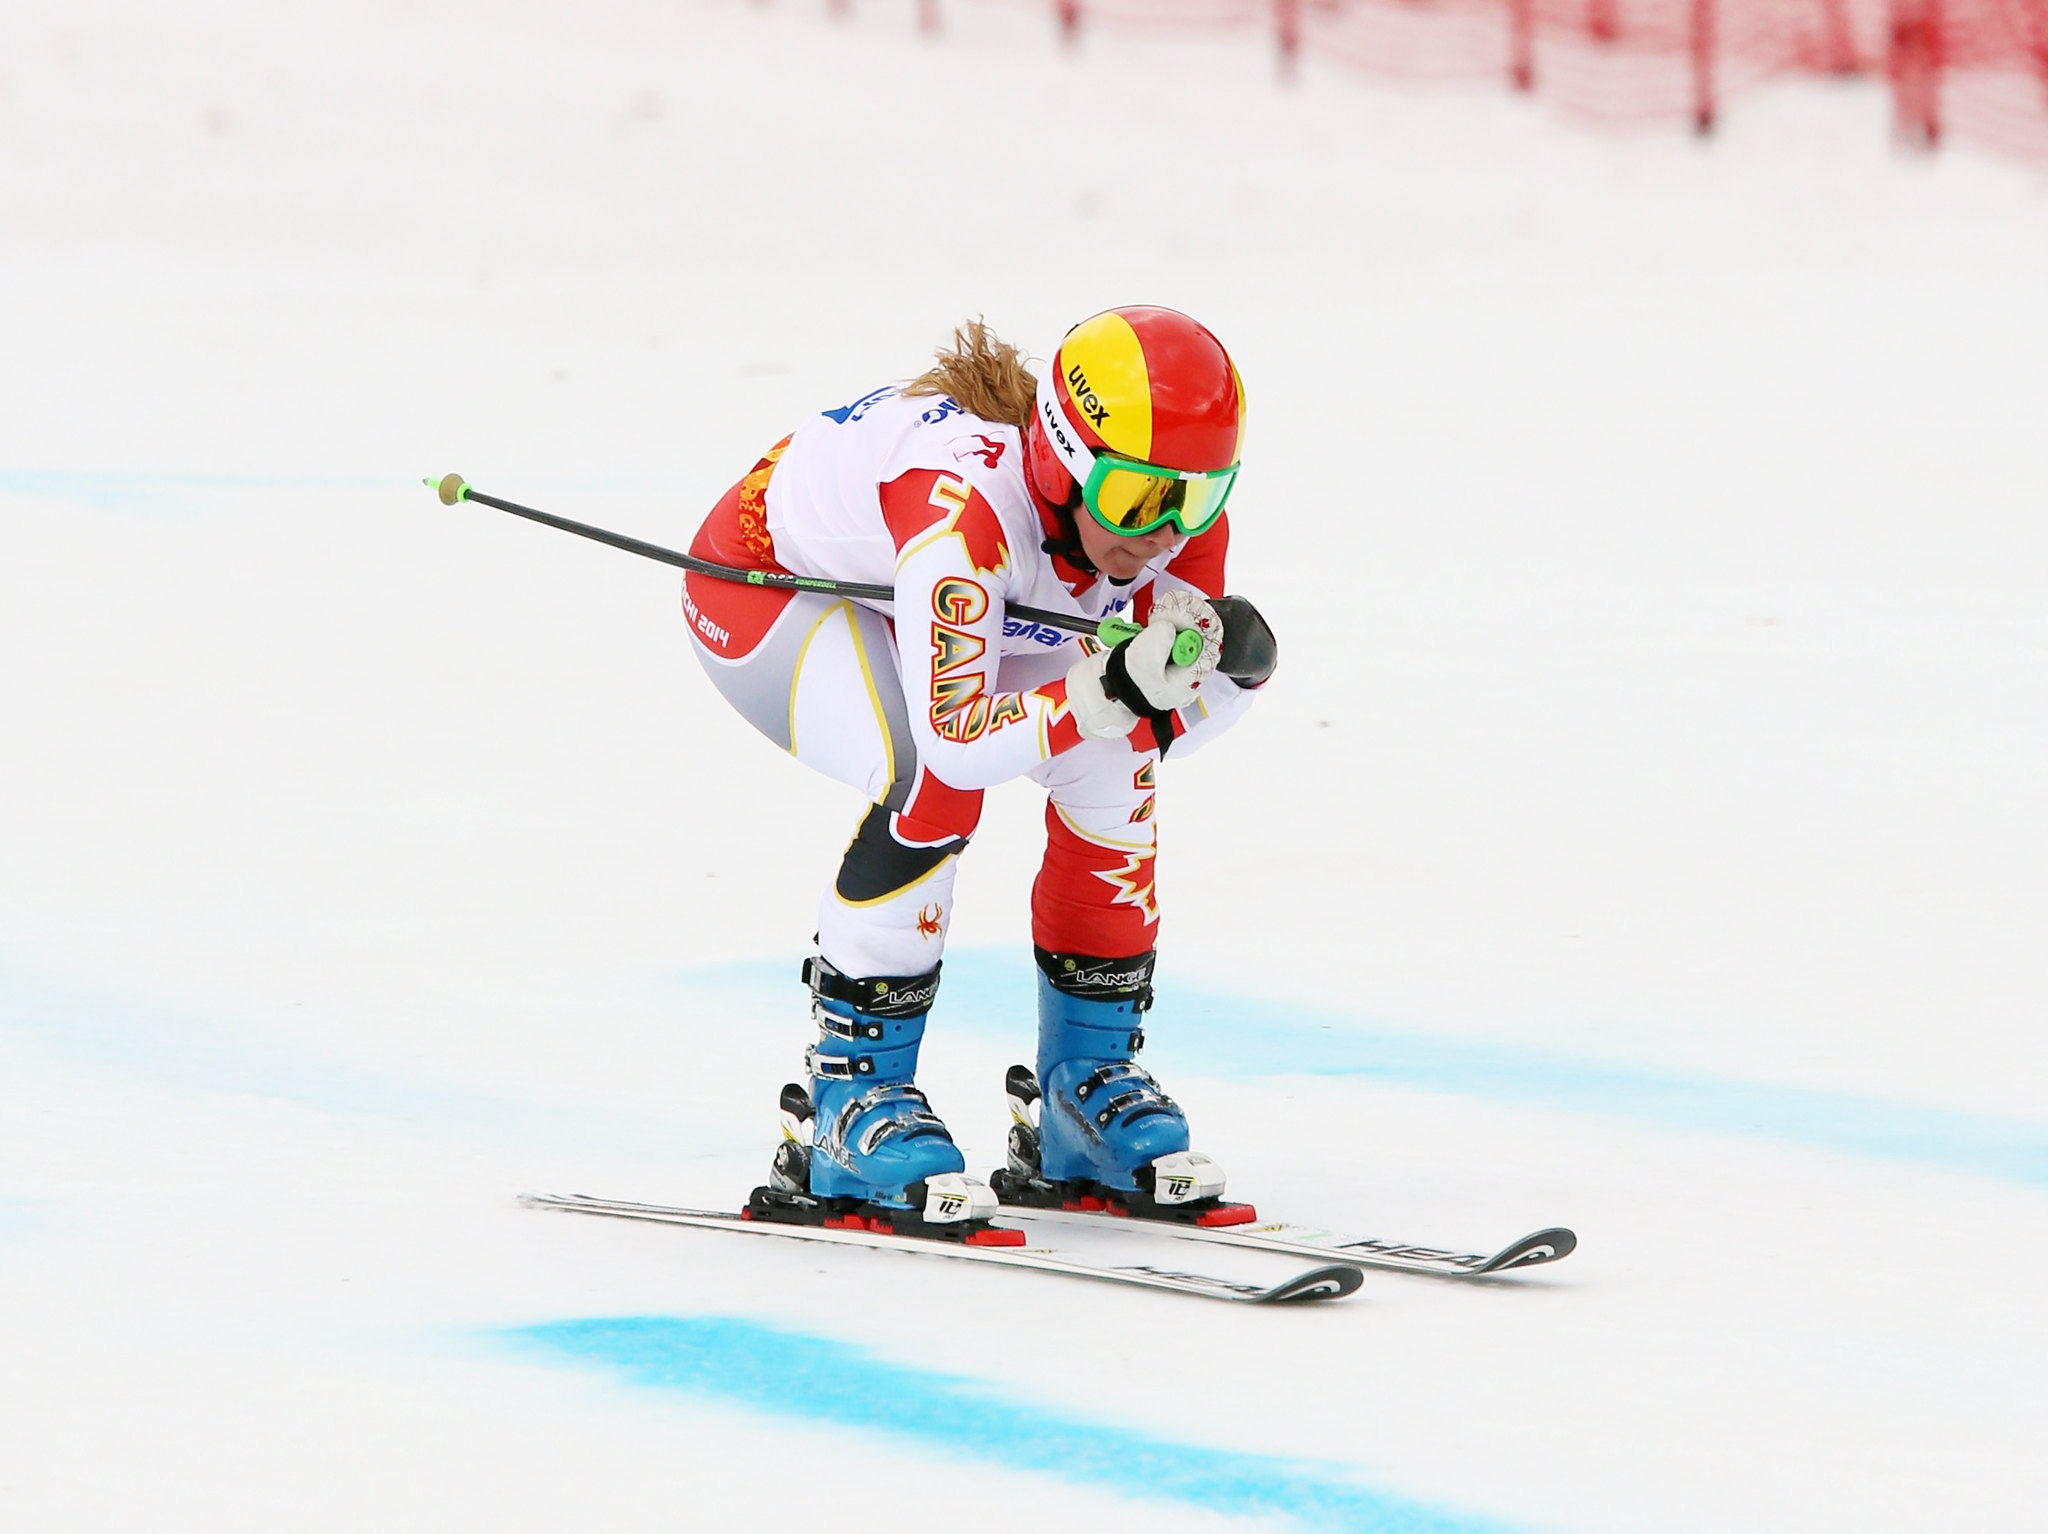 Alex Starker competes in her first Paralympic Winter Games in Sochi, RUS